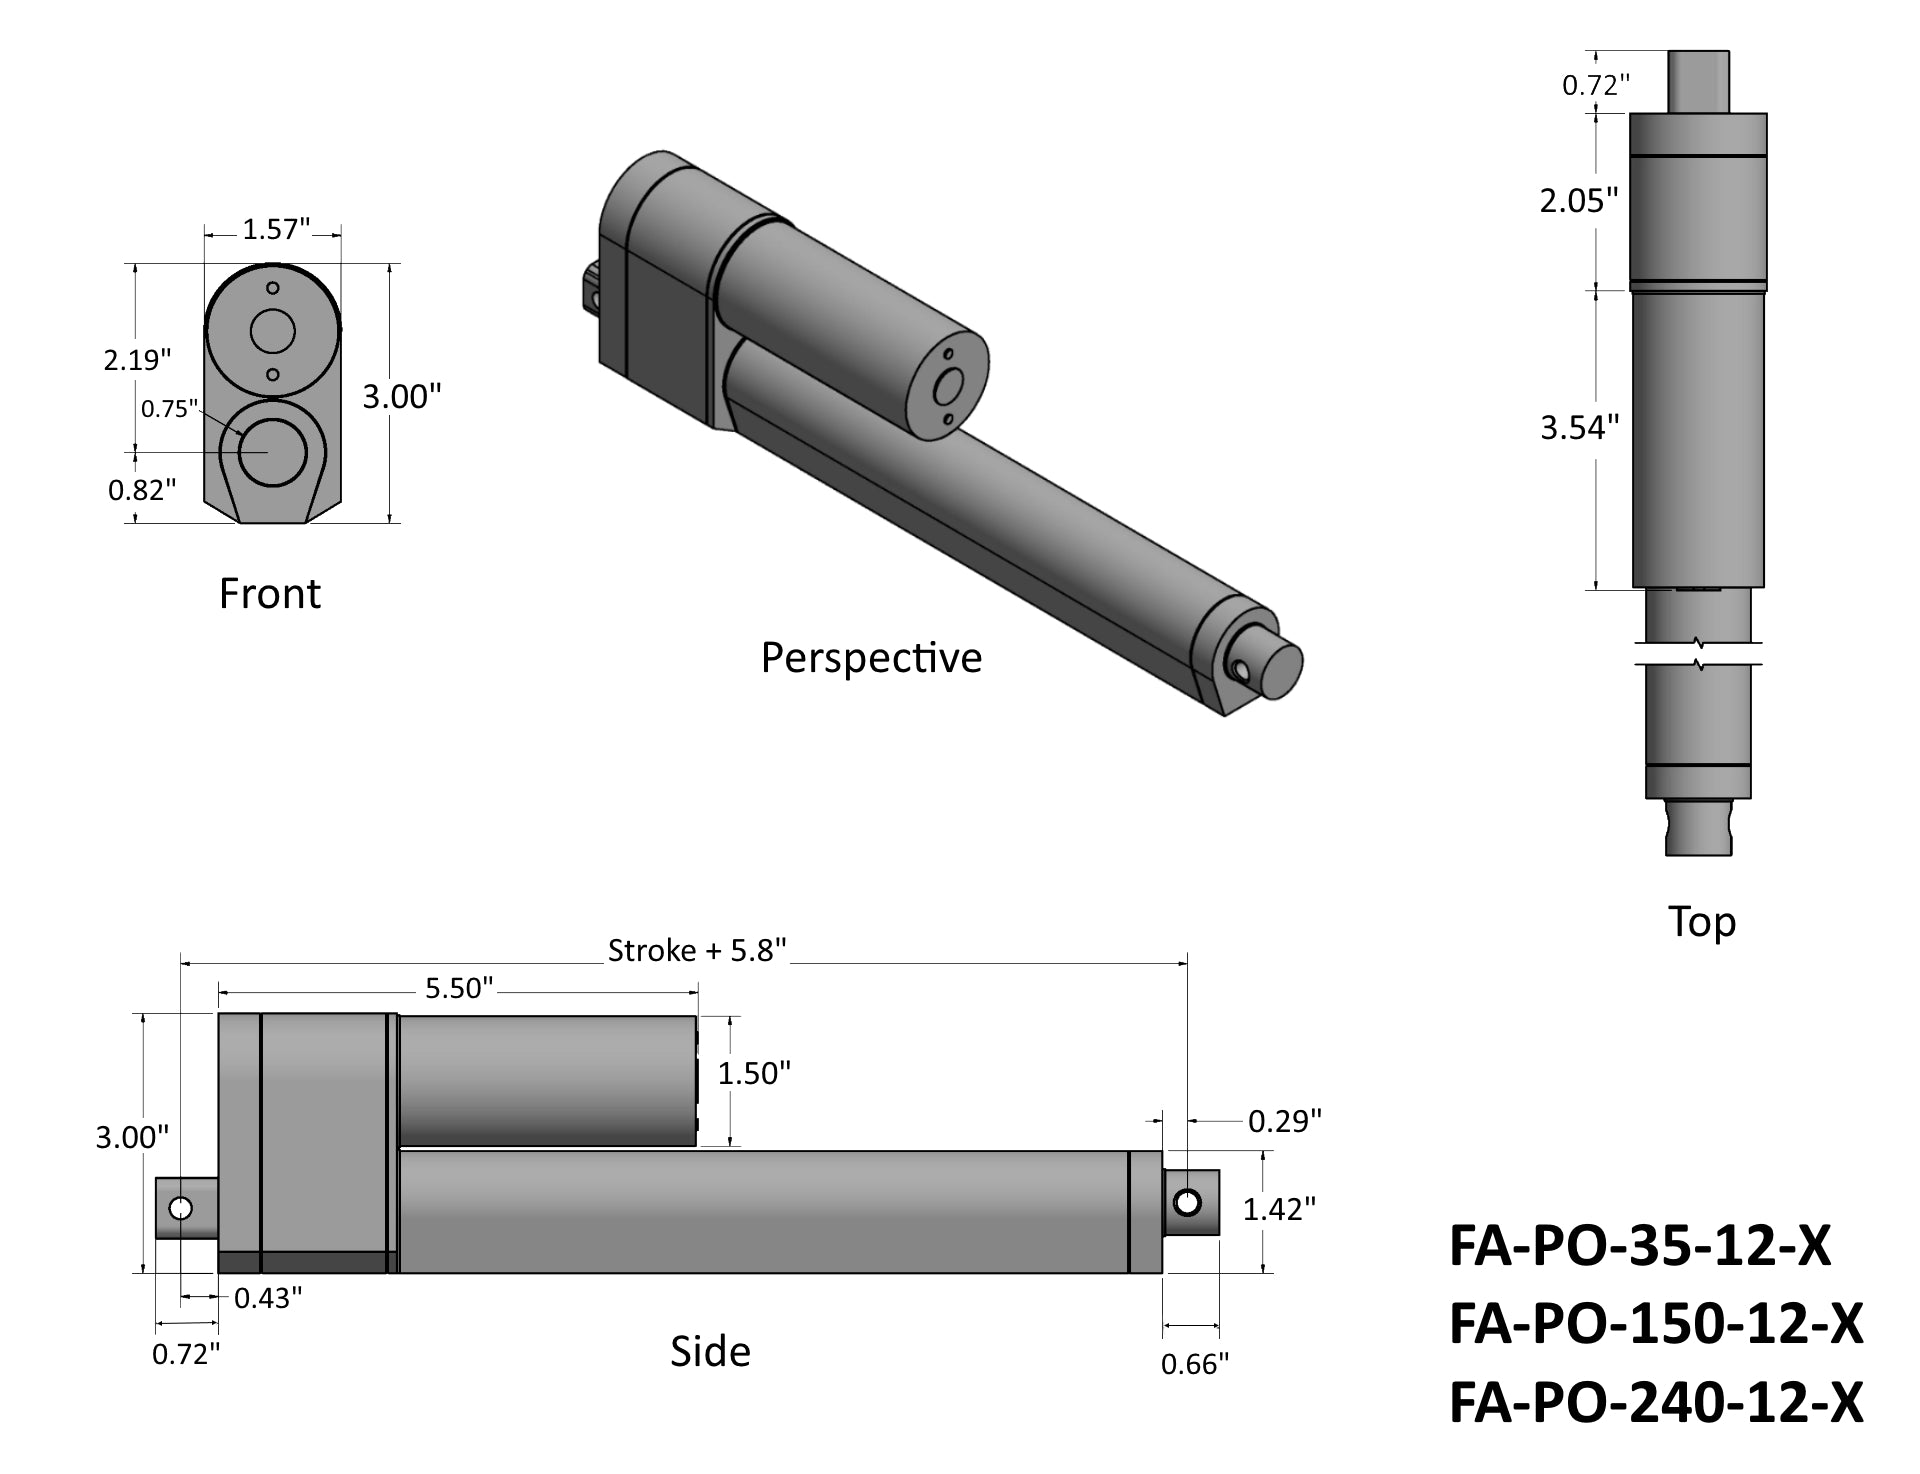 Feedback Rod Actuator Dimensions